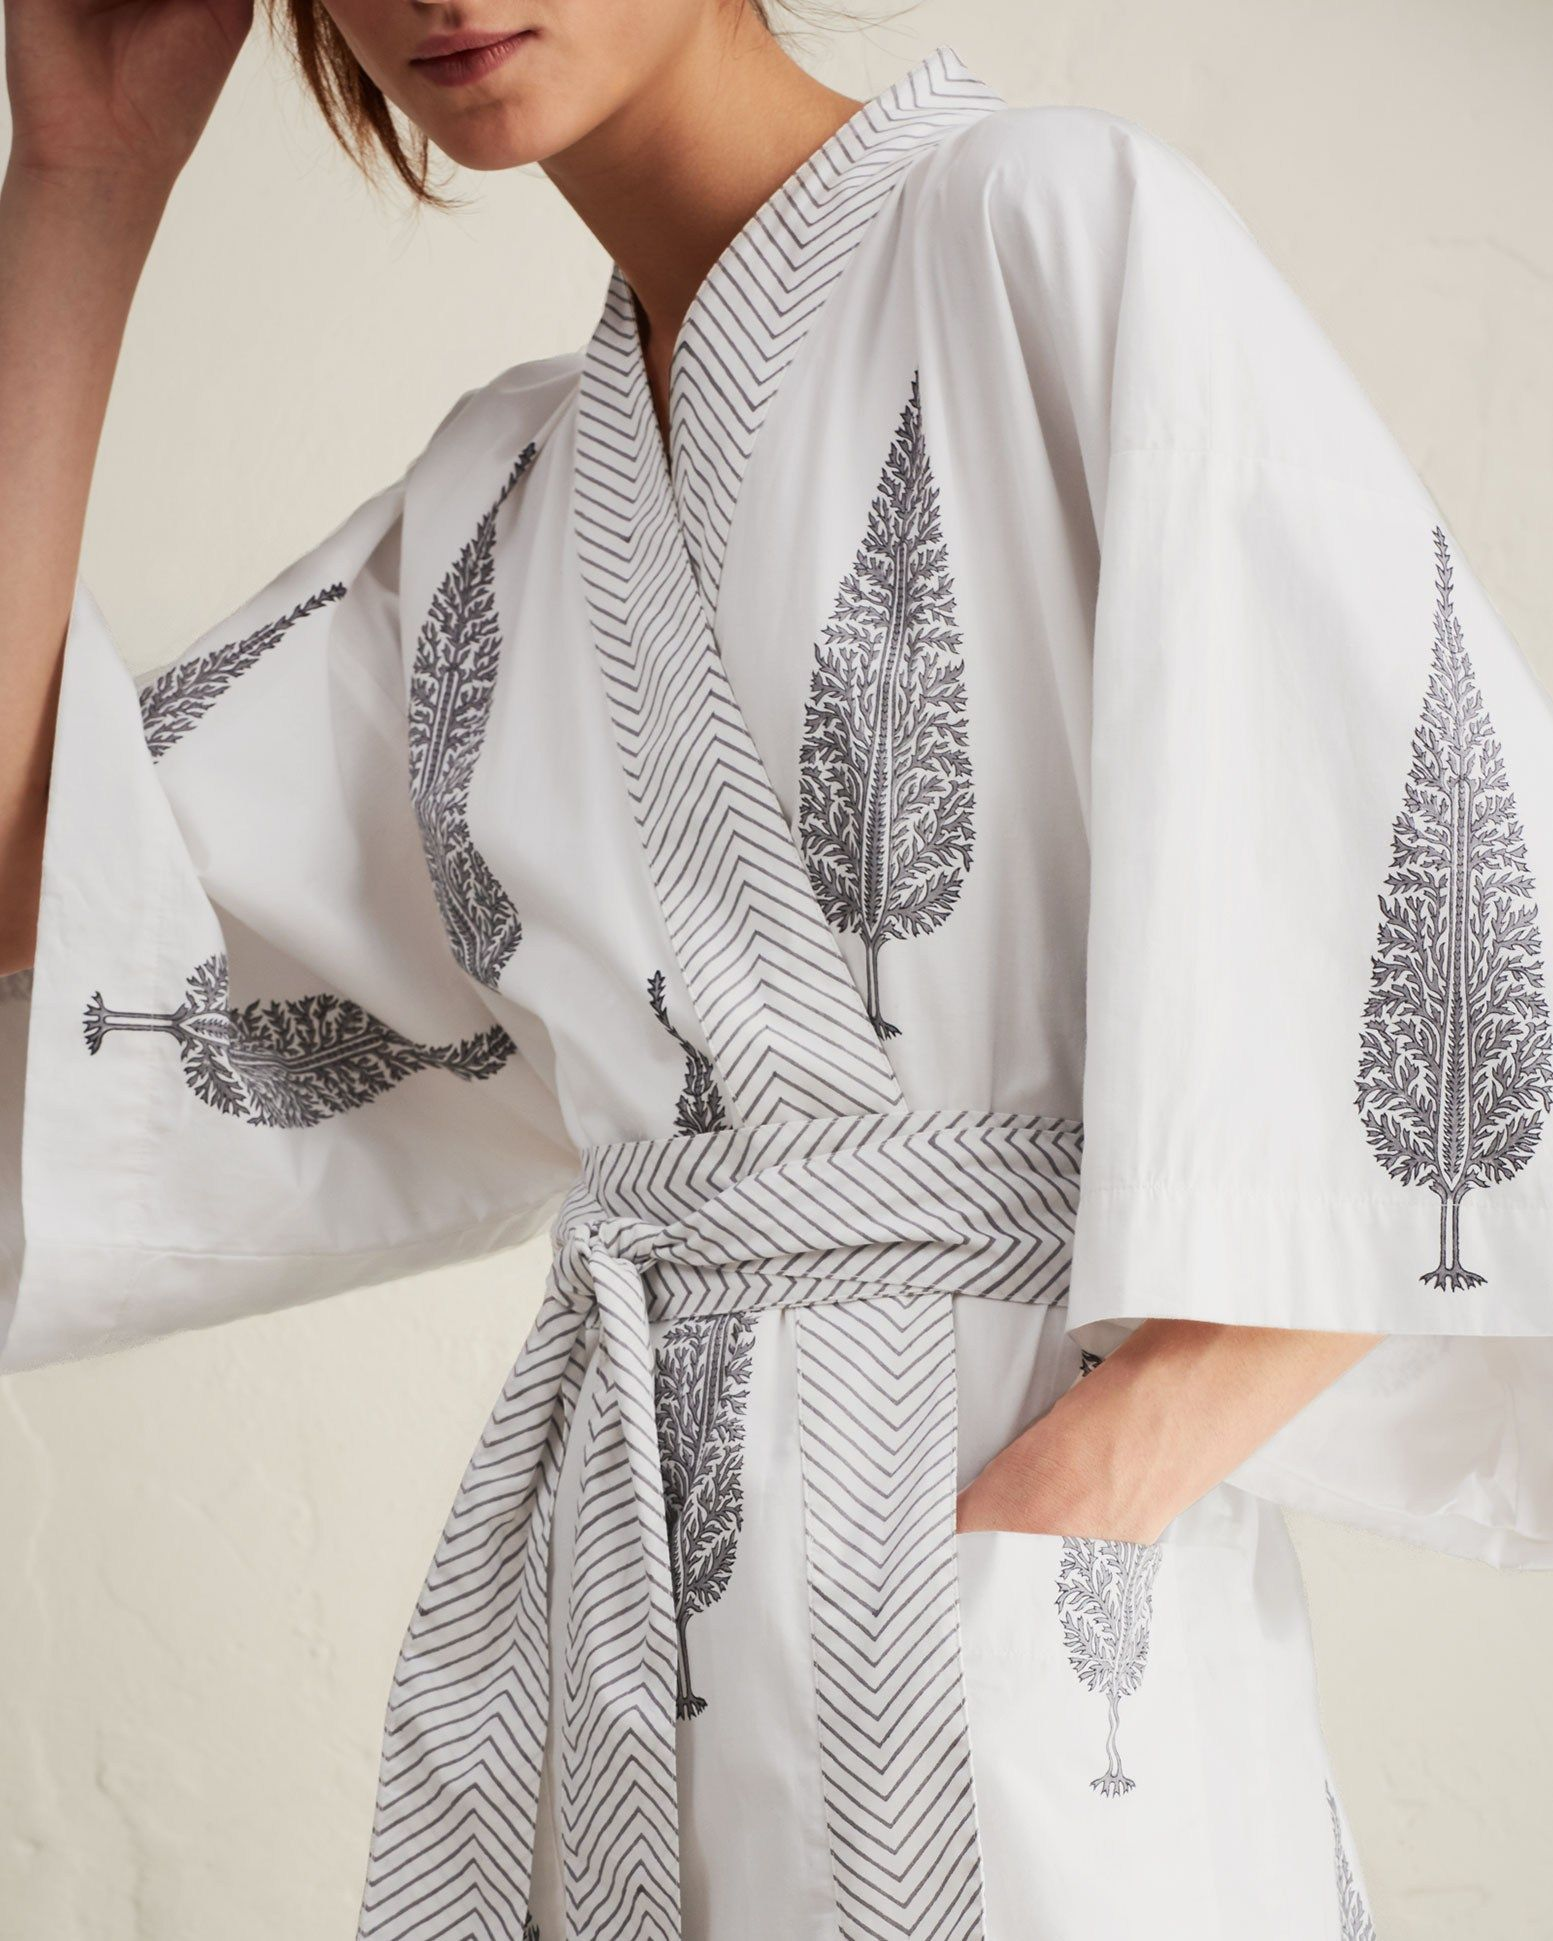 578b63379c Beautiful hand block printed cotton. Crisp and lightweight. Contrasting  border. Kimono sleeves. Patch pockets. Wide wrappy tie.